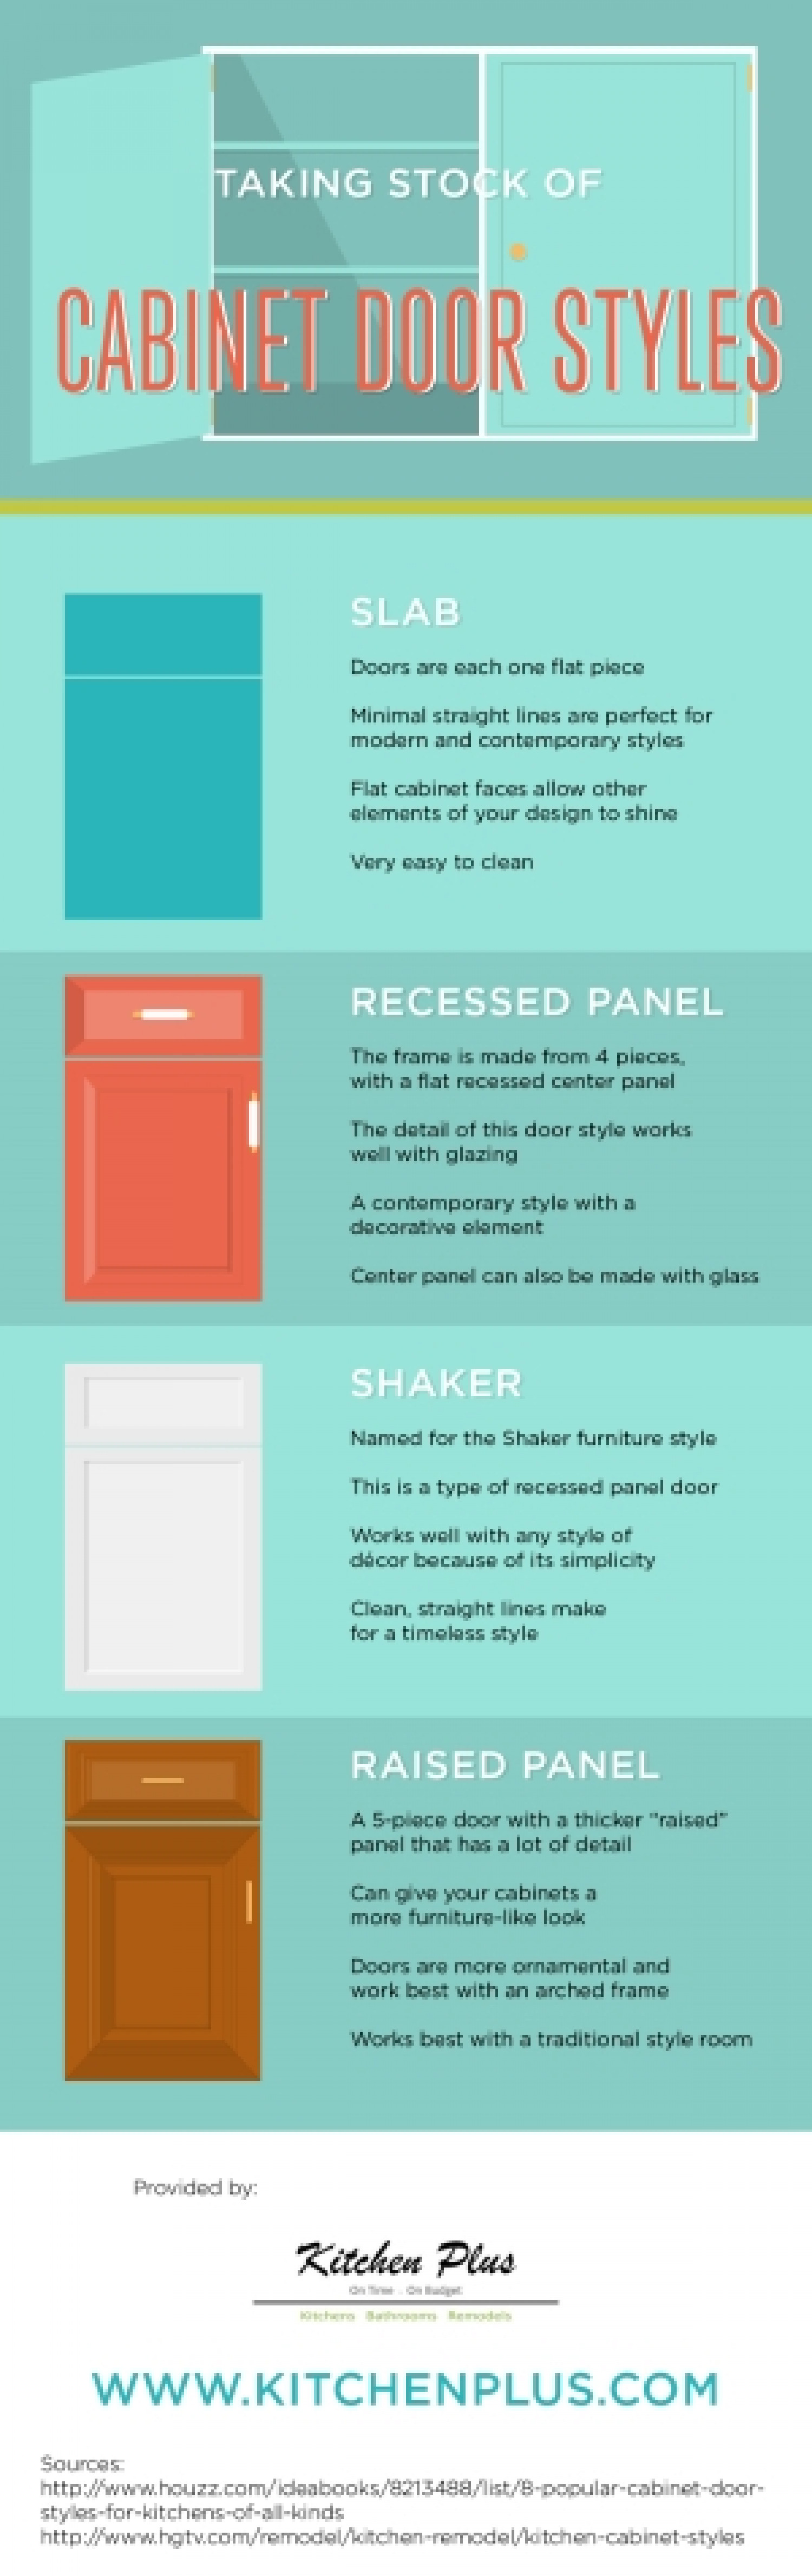 Taking Stock of Cabinet Door Styles Infographic